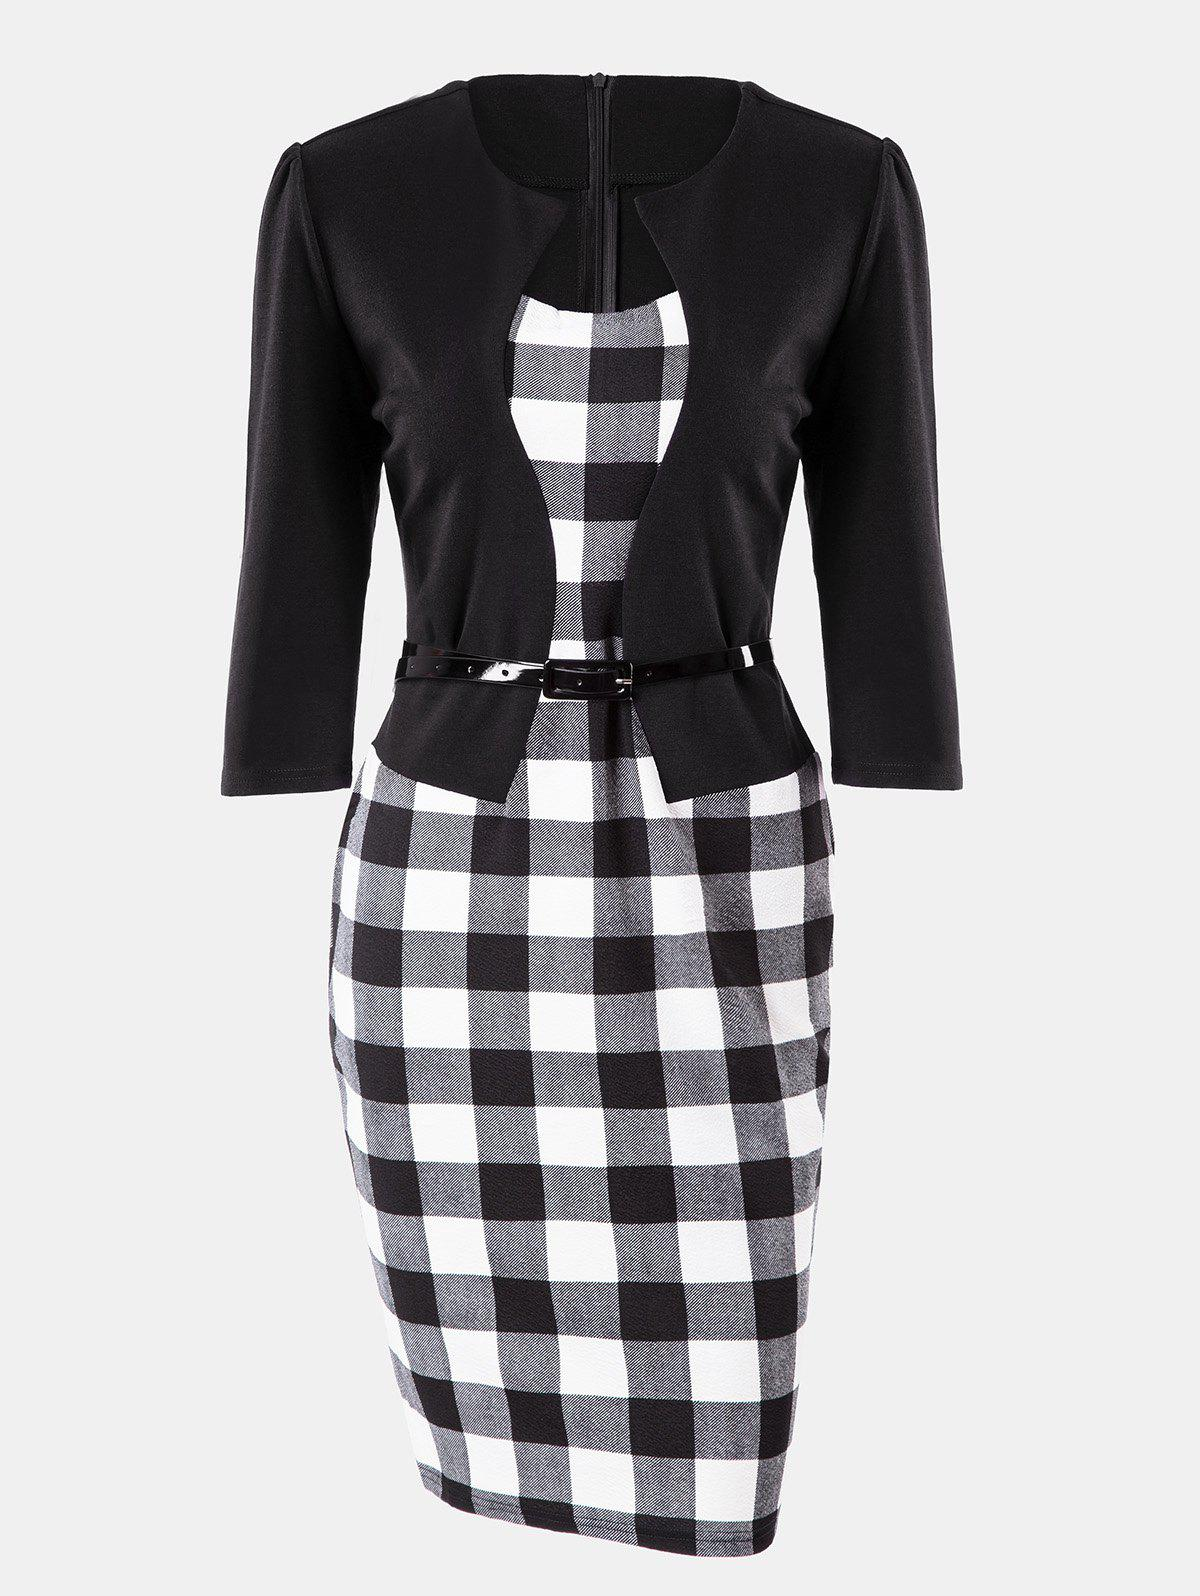 Store Plaid Stitching Seven Sleeves Business Slim Pencil Dress